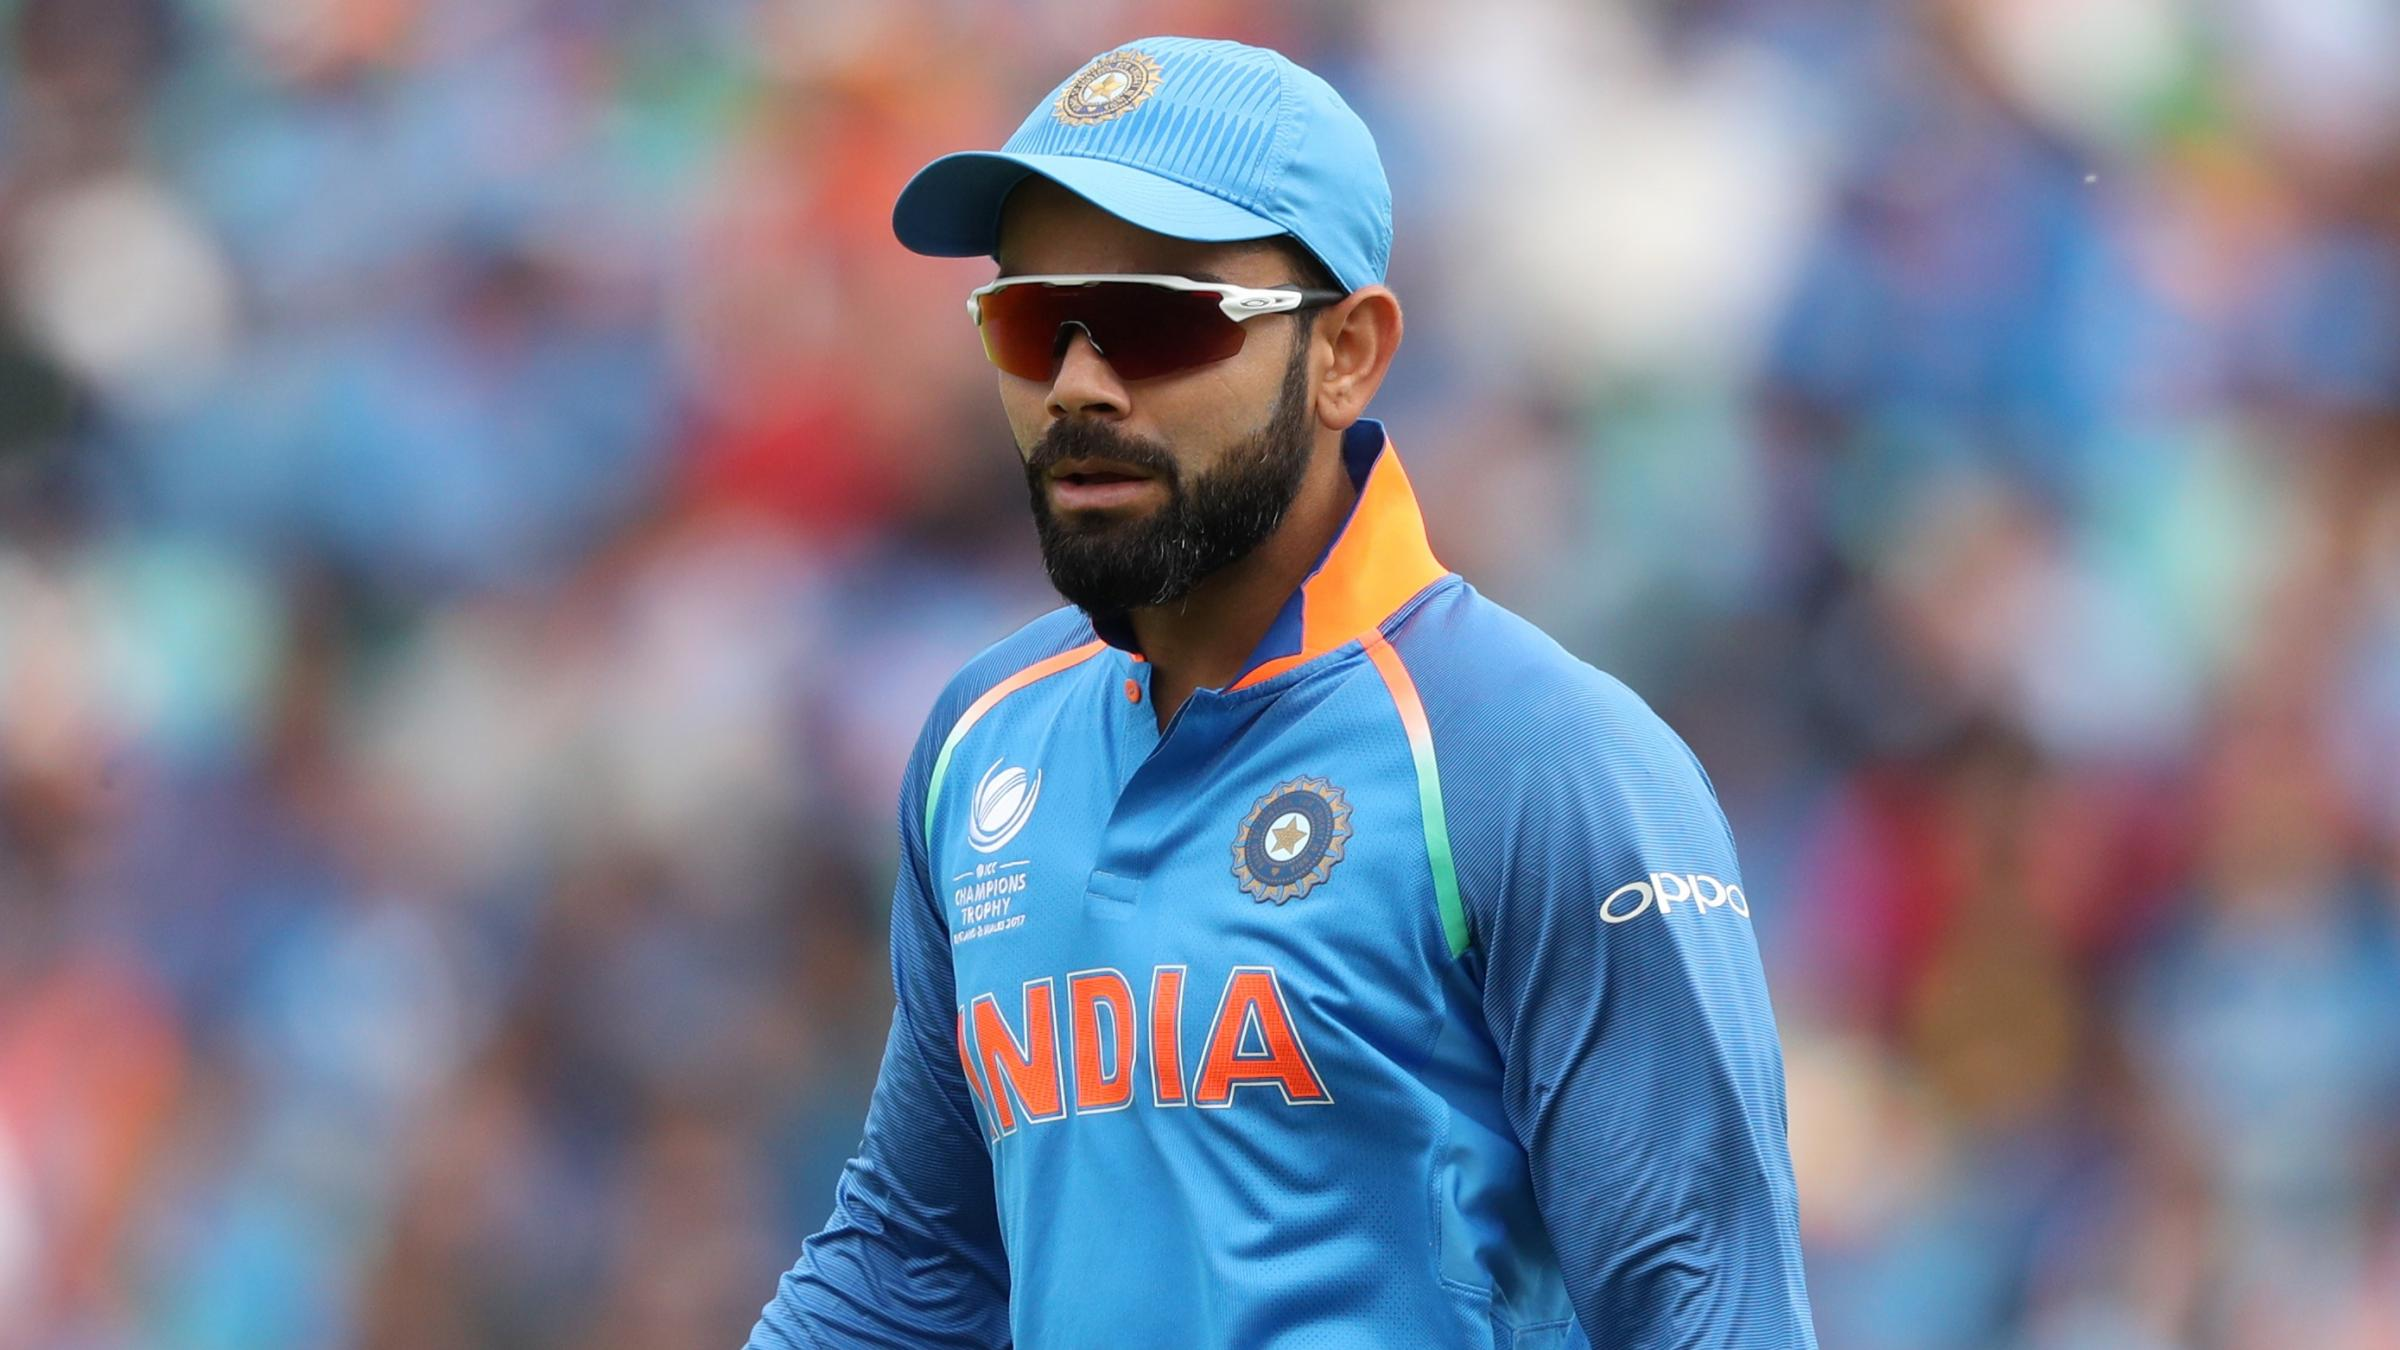 Champions Trophy: Team India gear up ahead of grand final against Pakistan